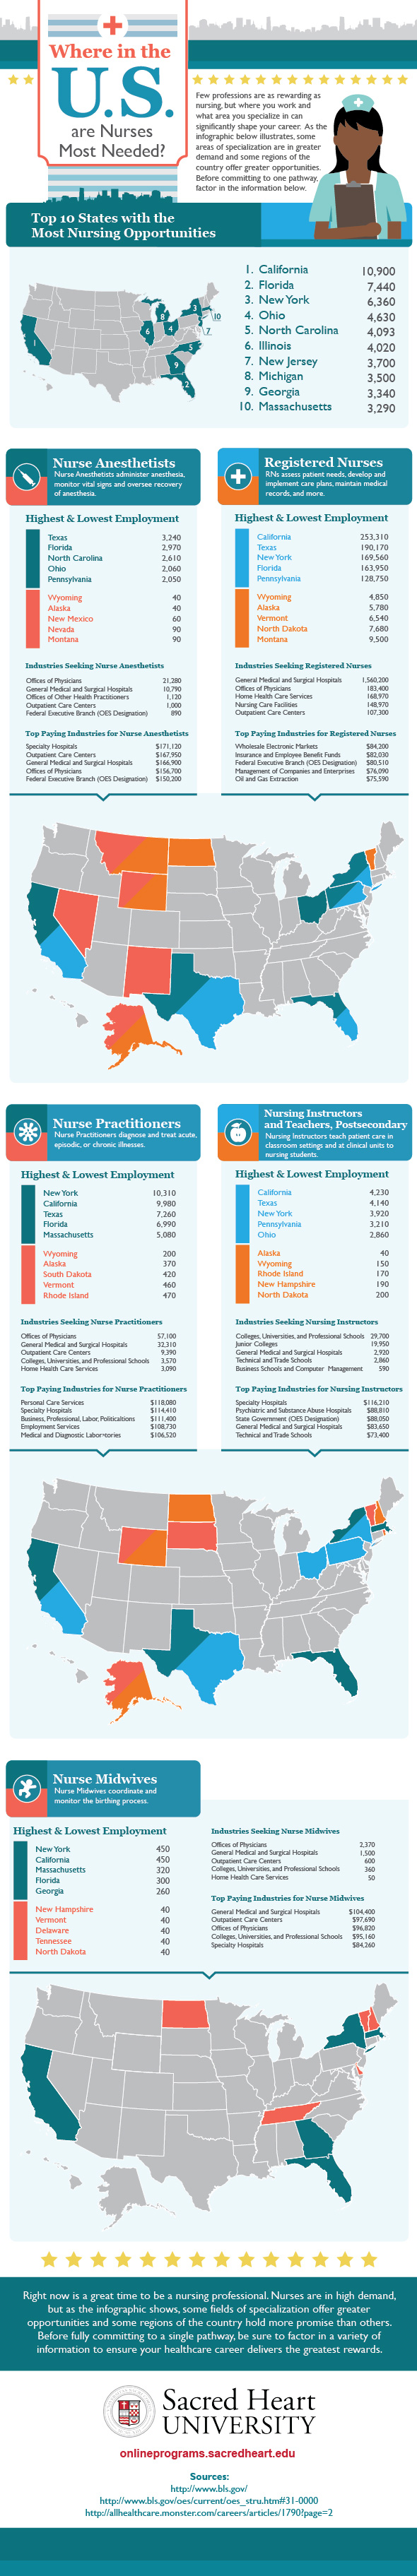 Where-in-the-US-can-nurses-find-the-most-opportunities